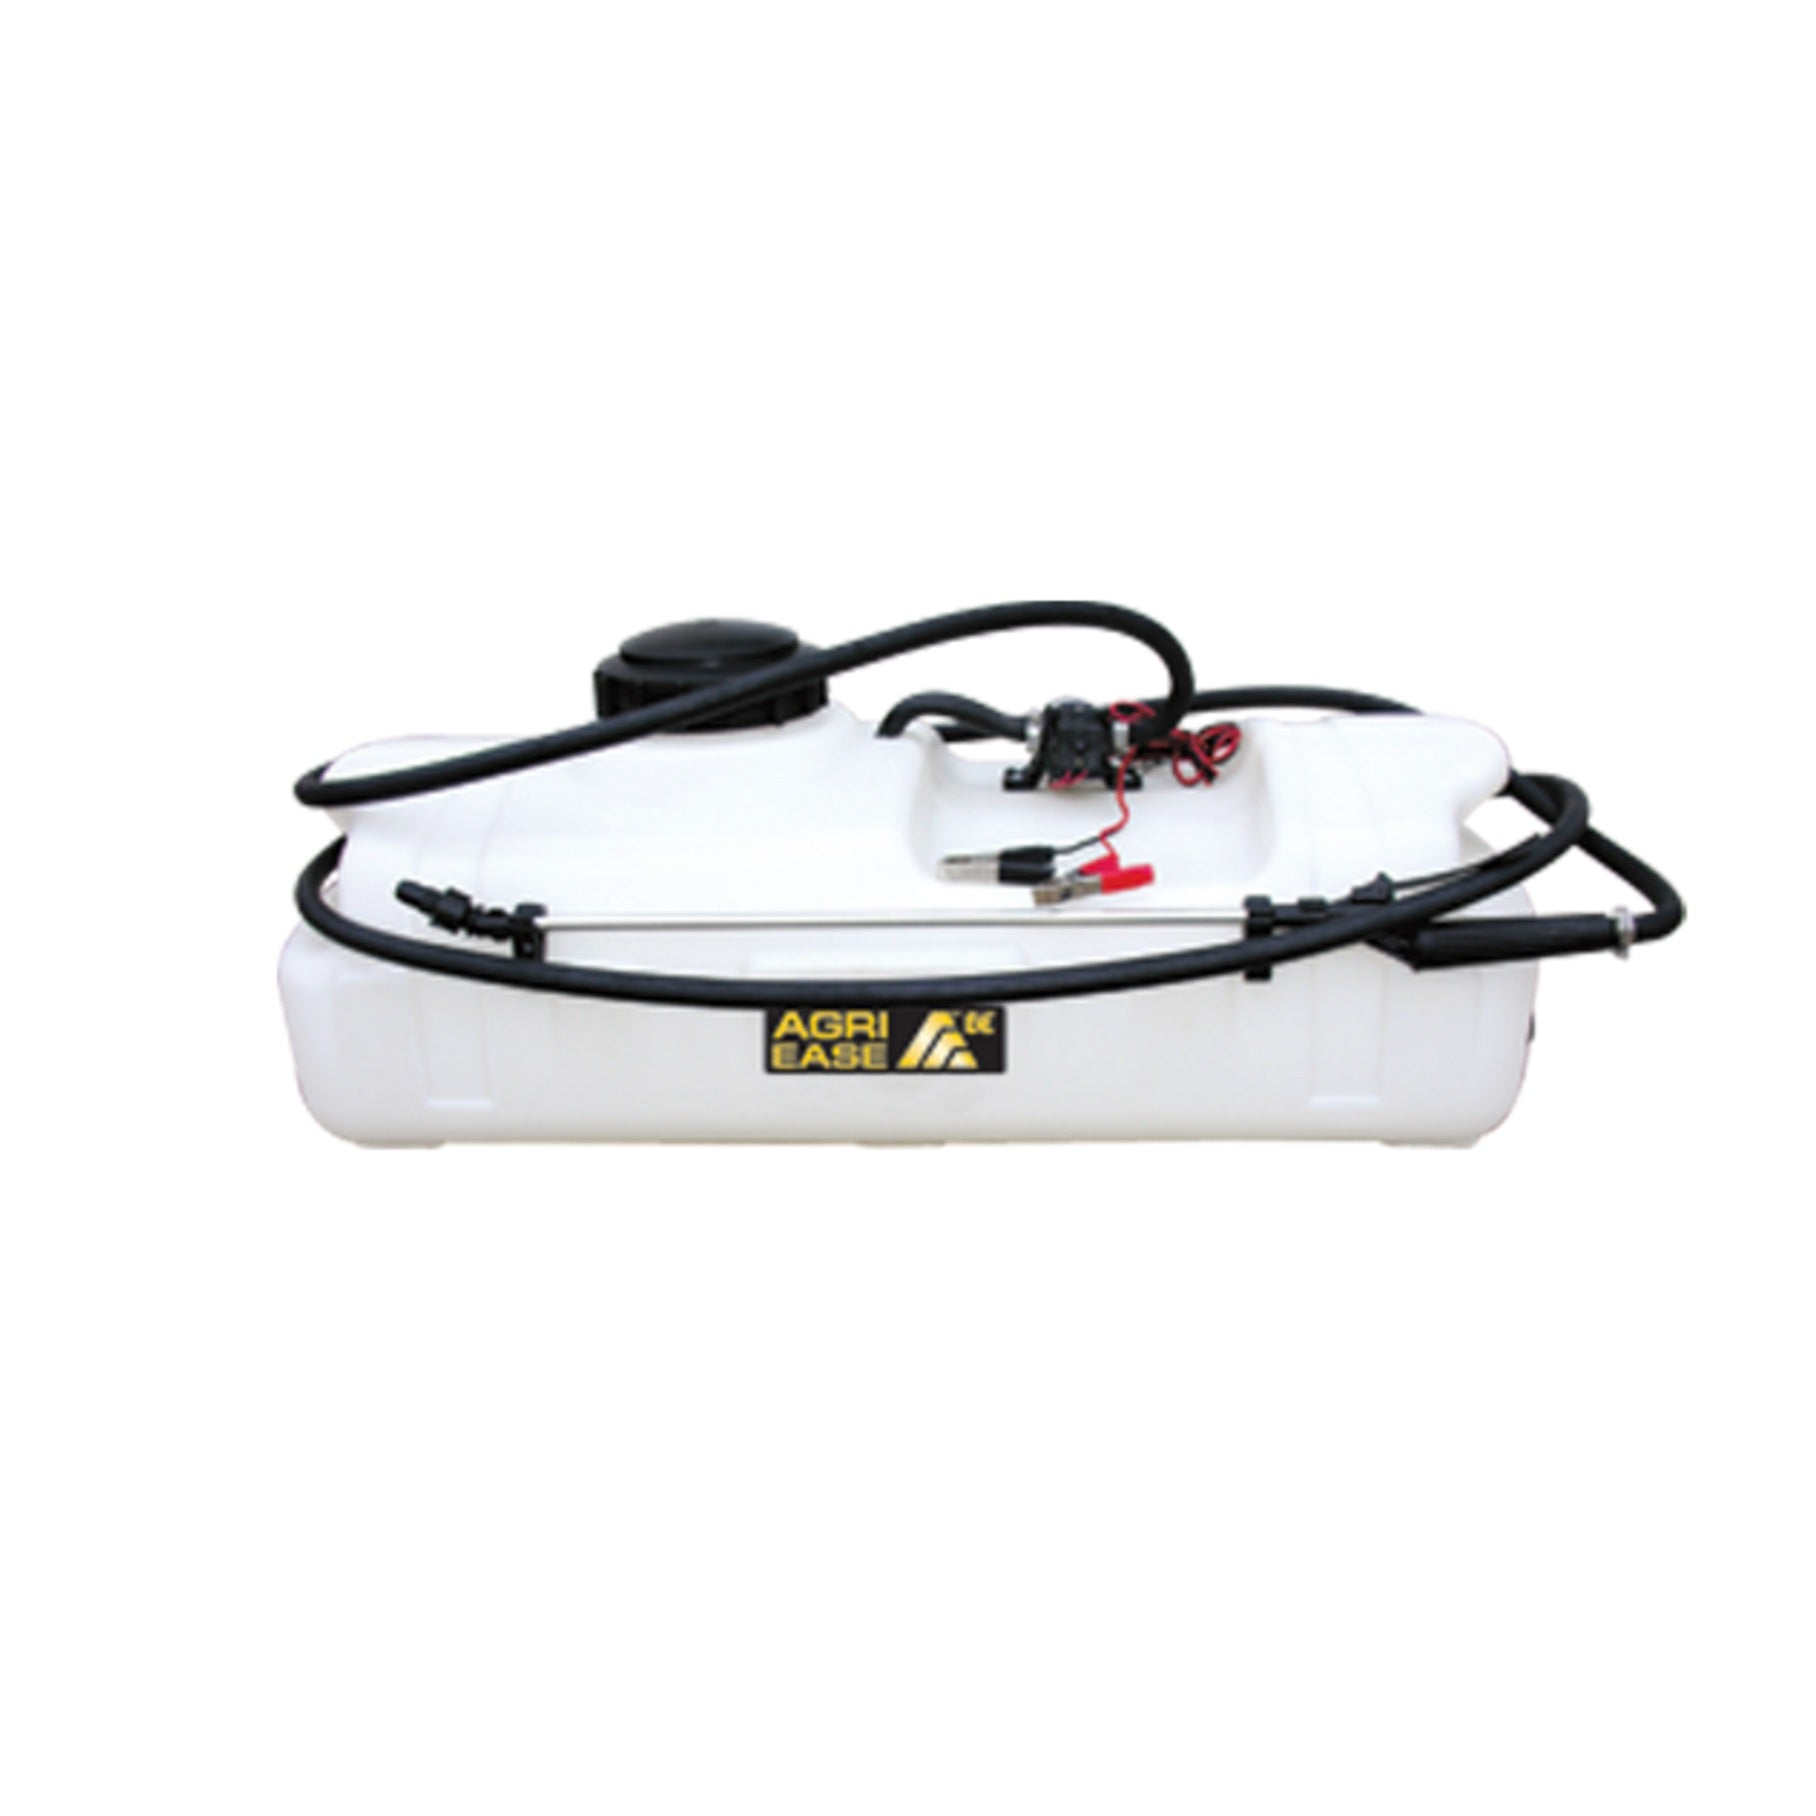 BE 12Volt Chemical Sprayer 25 Gallon 1.0gpm